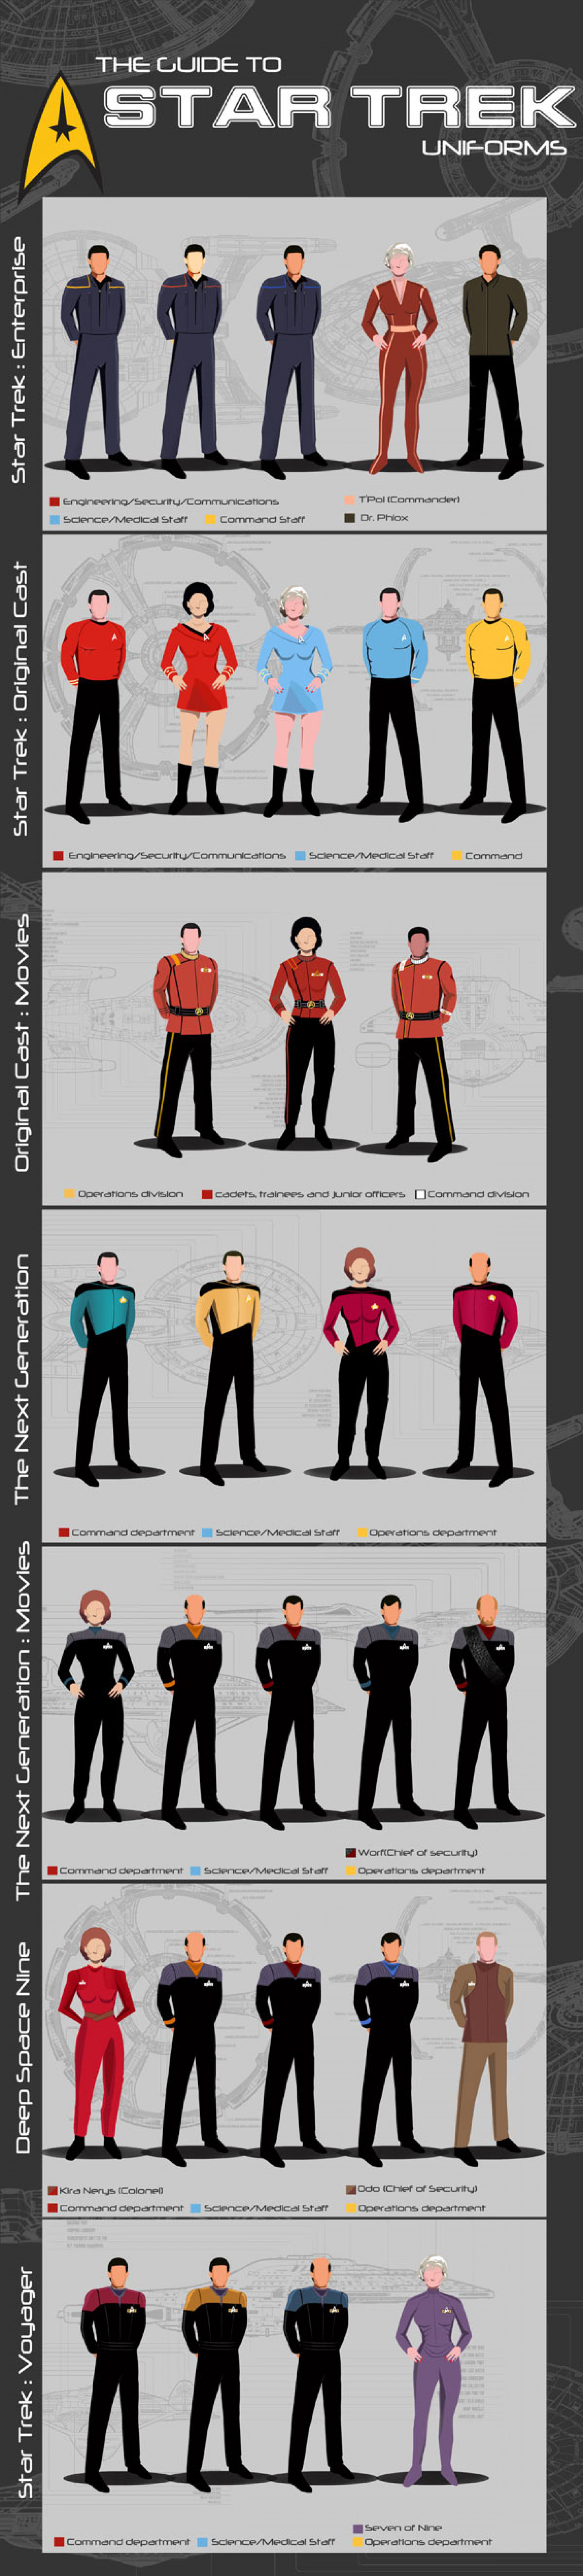 star trek uniform guide visual ly rh visual ly star trek tng viewing guide reddit star trek tng viewing guide reddit